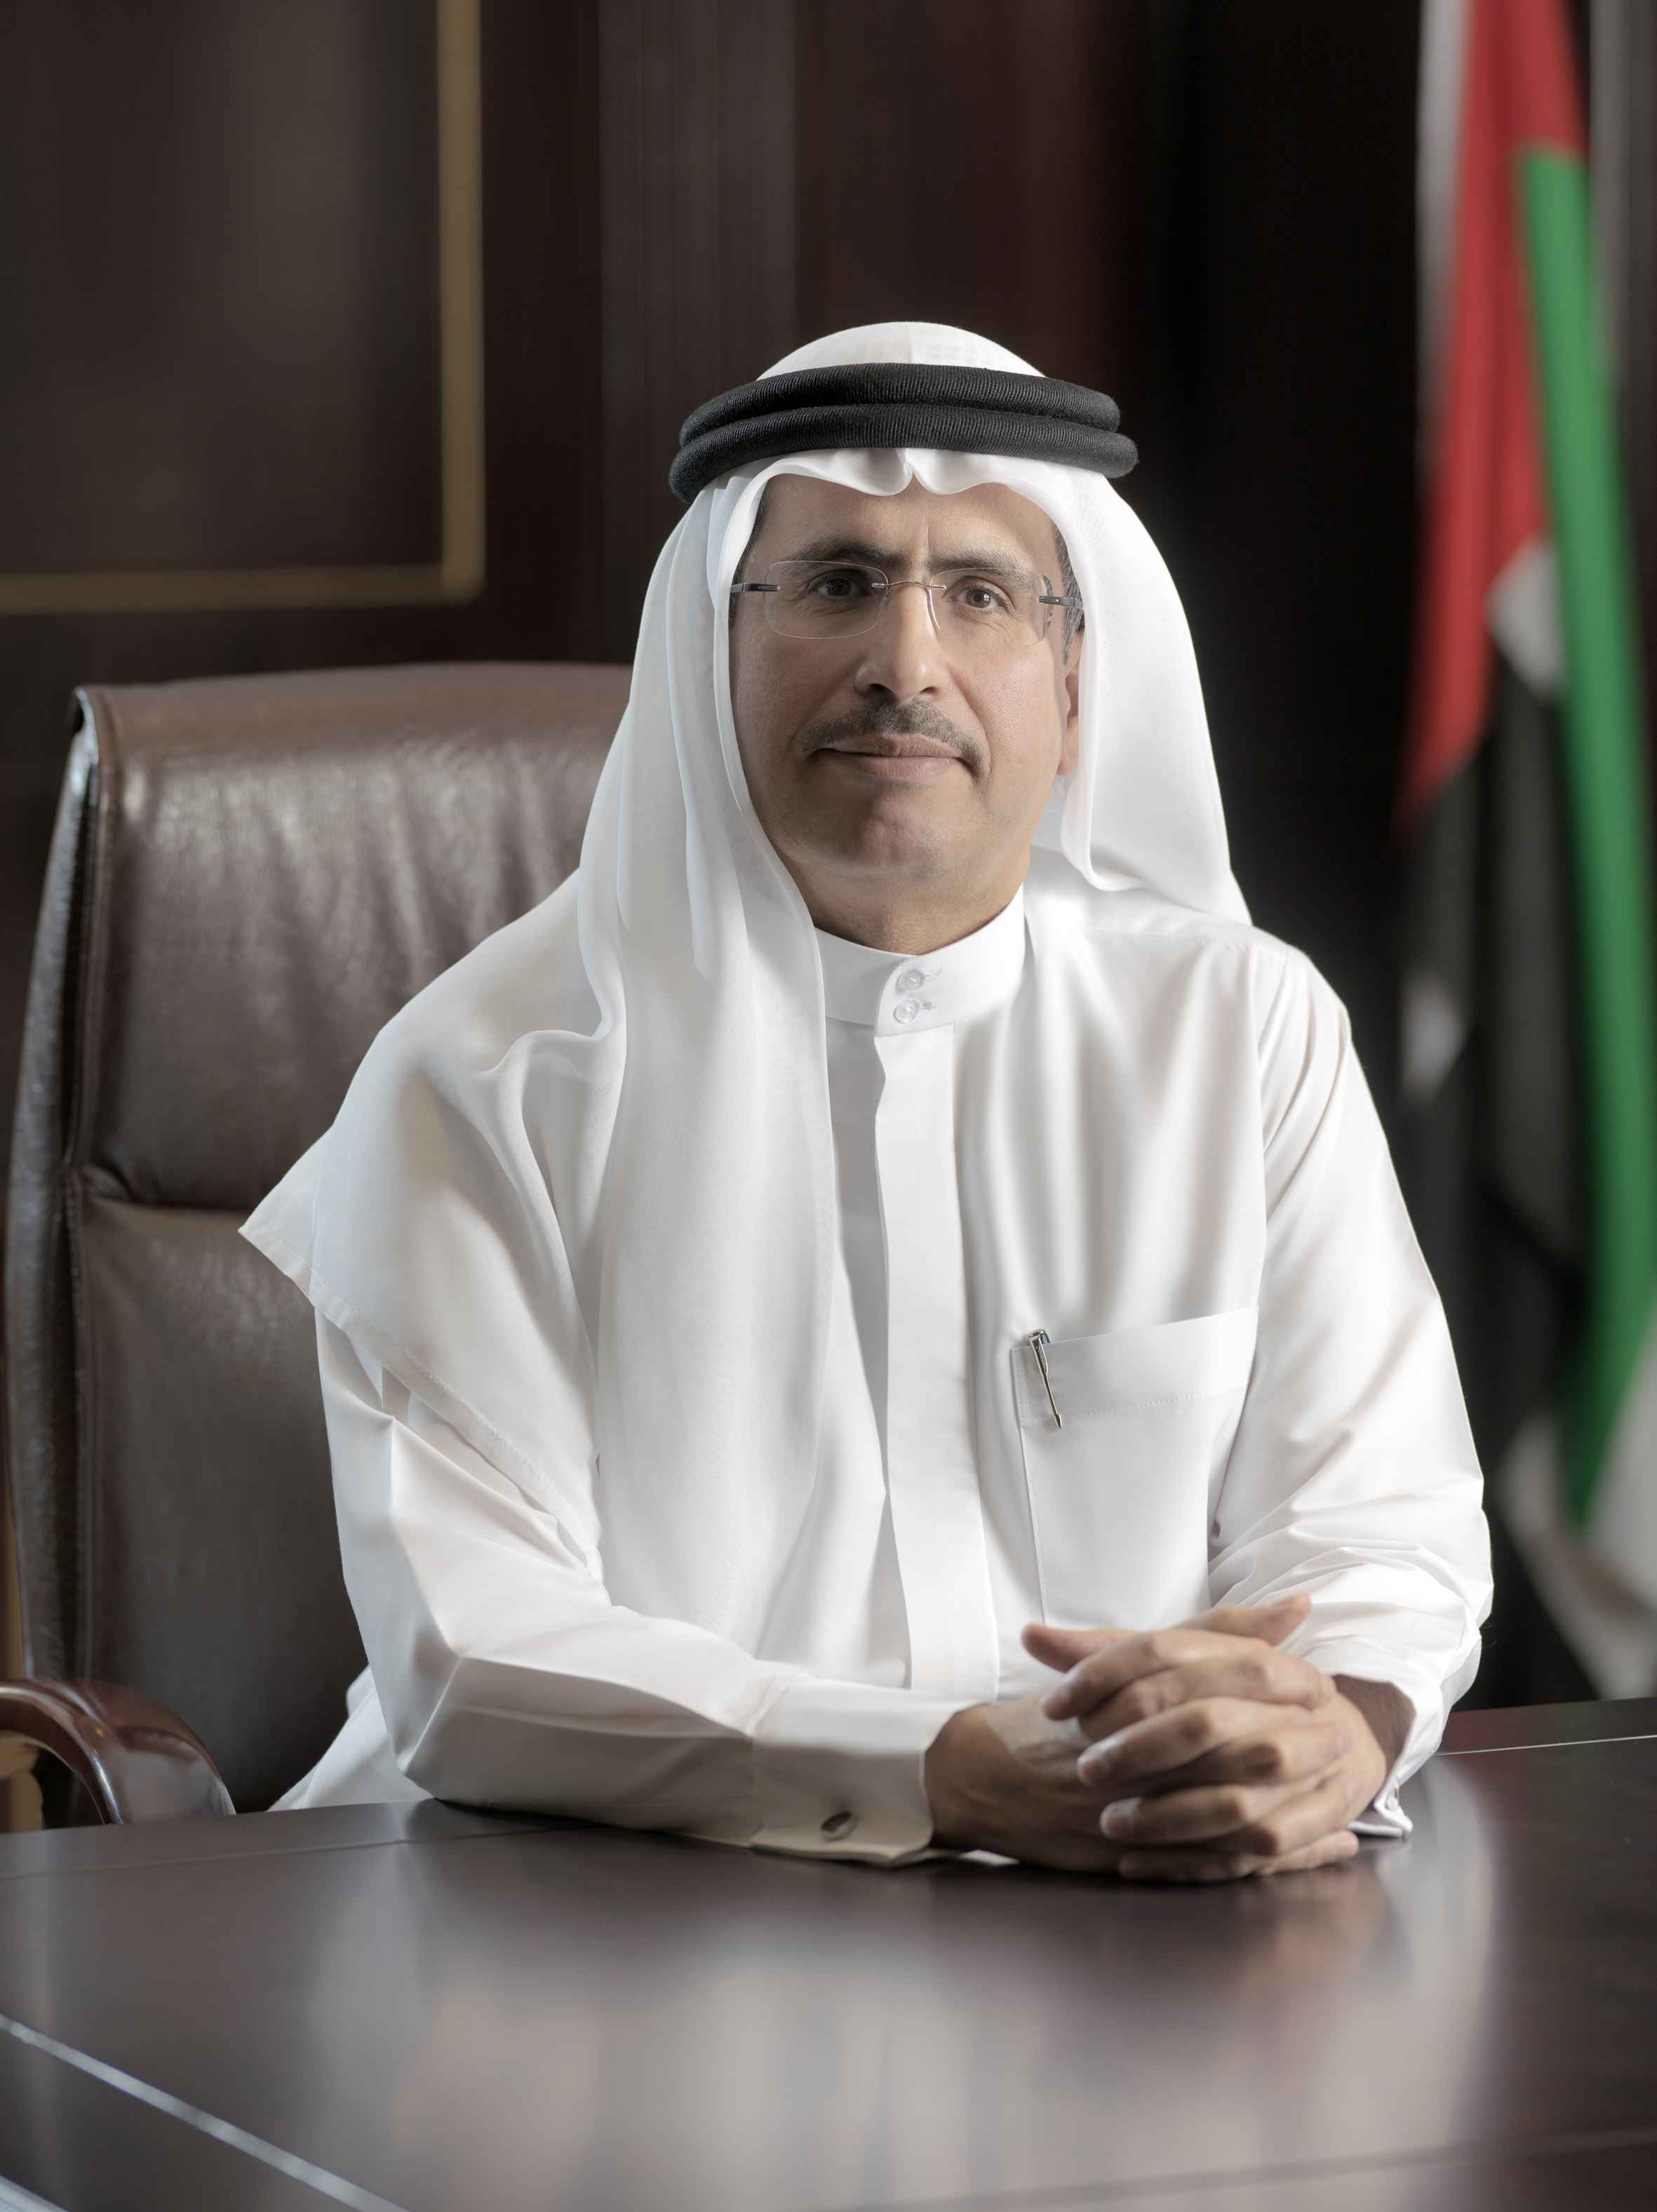 DEWA employees support its efforts in CSR and voluntary work